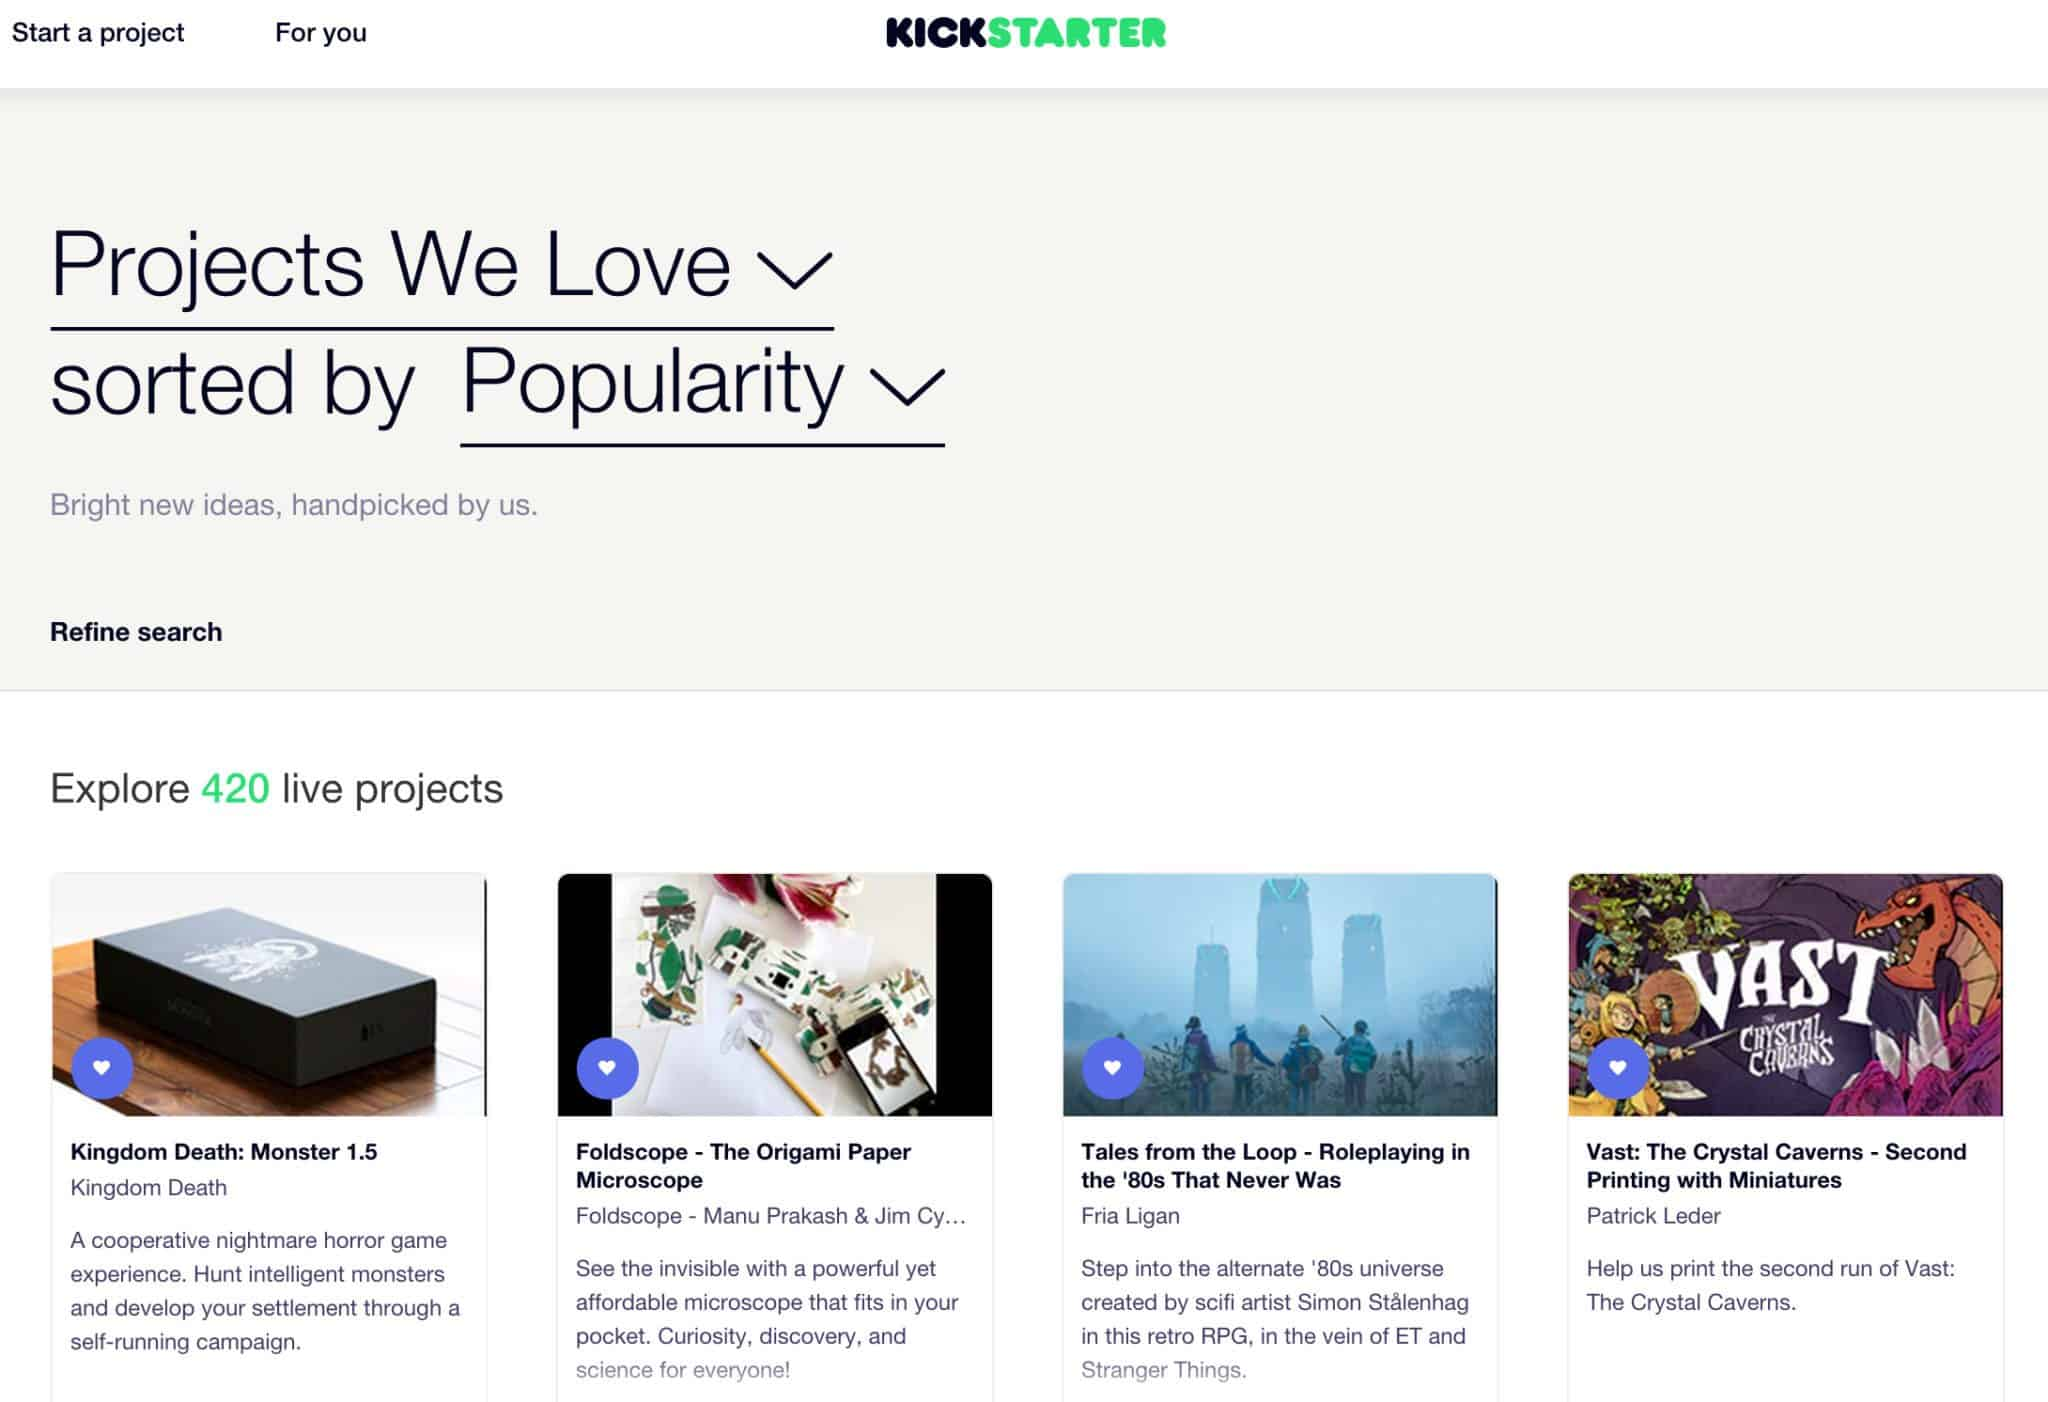 recommended projects on crowd funding site kickstarter